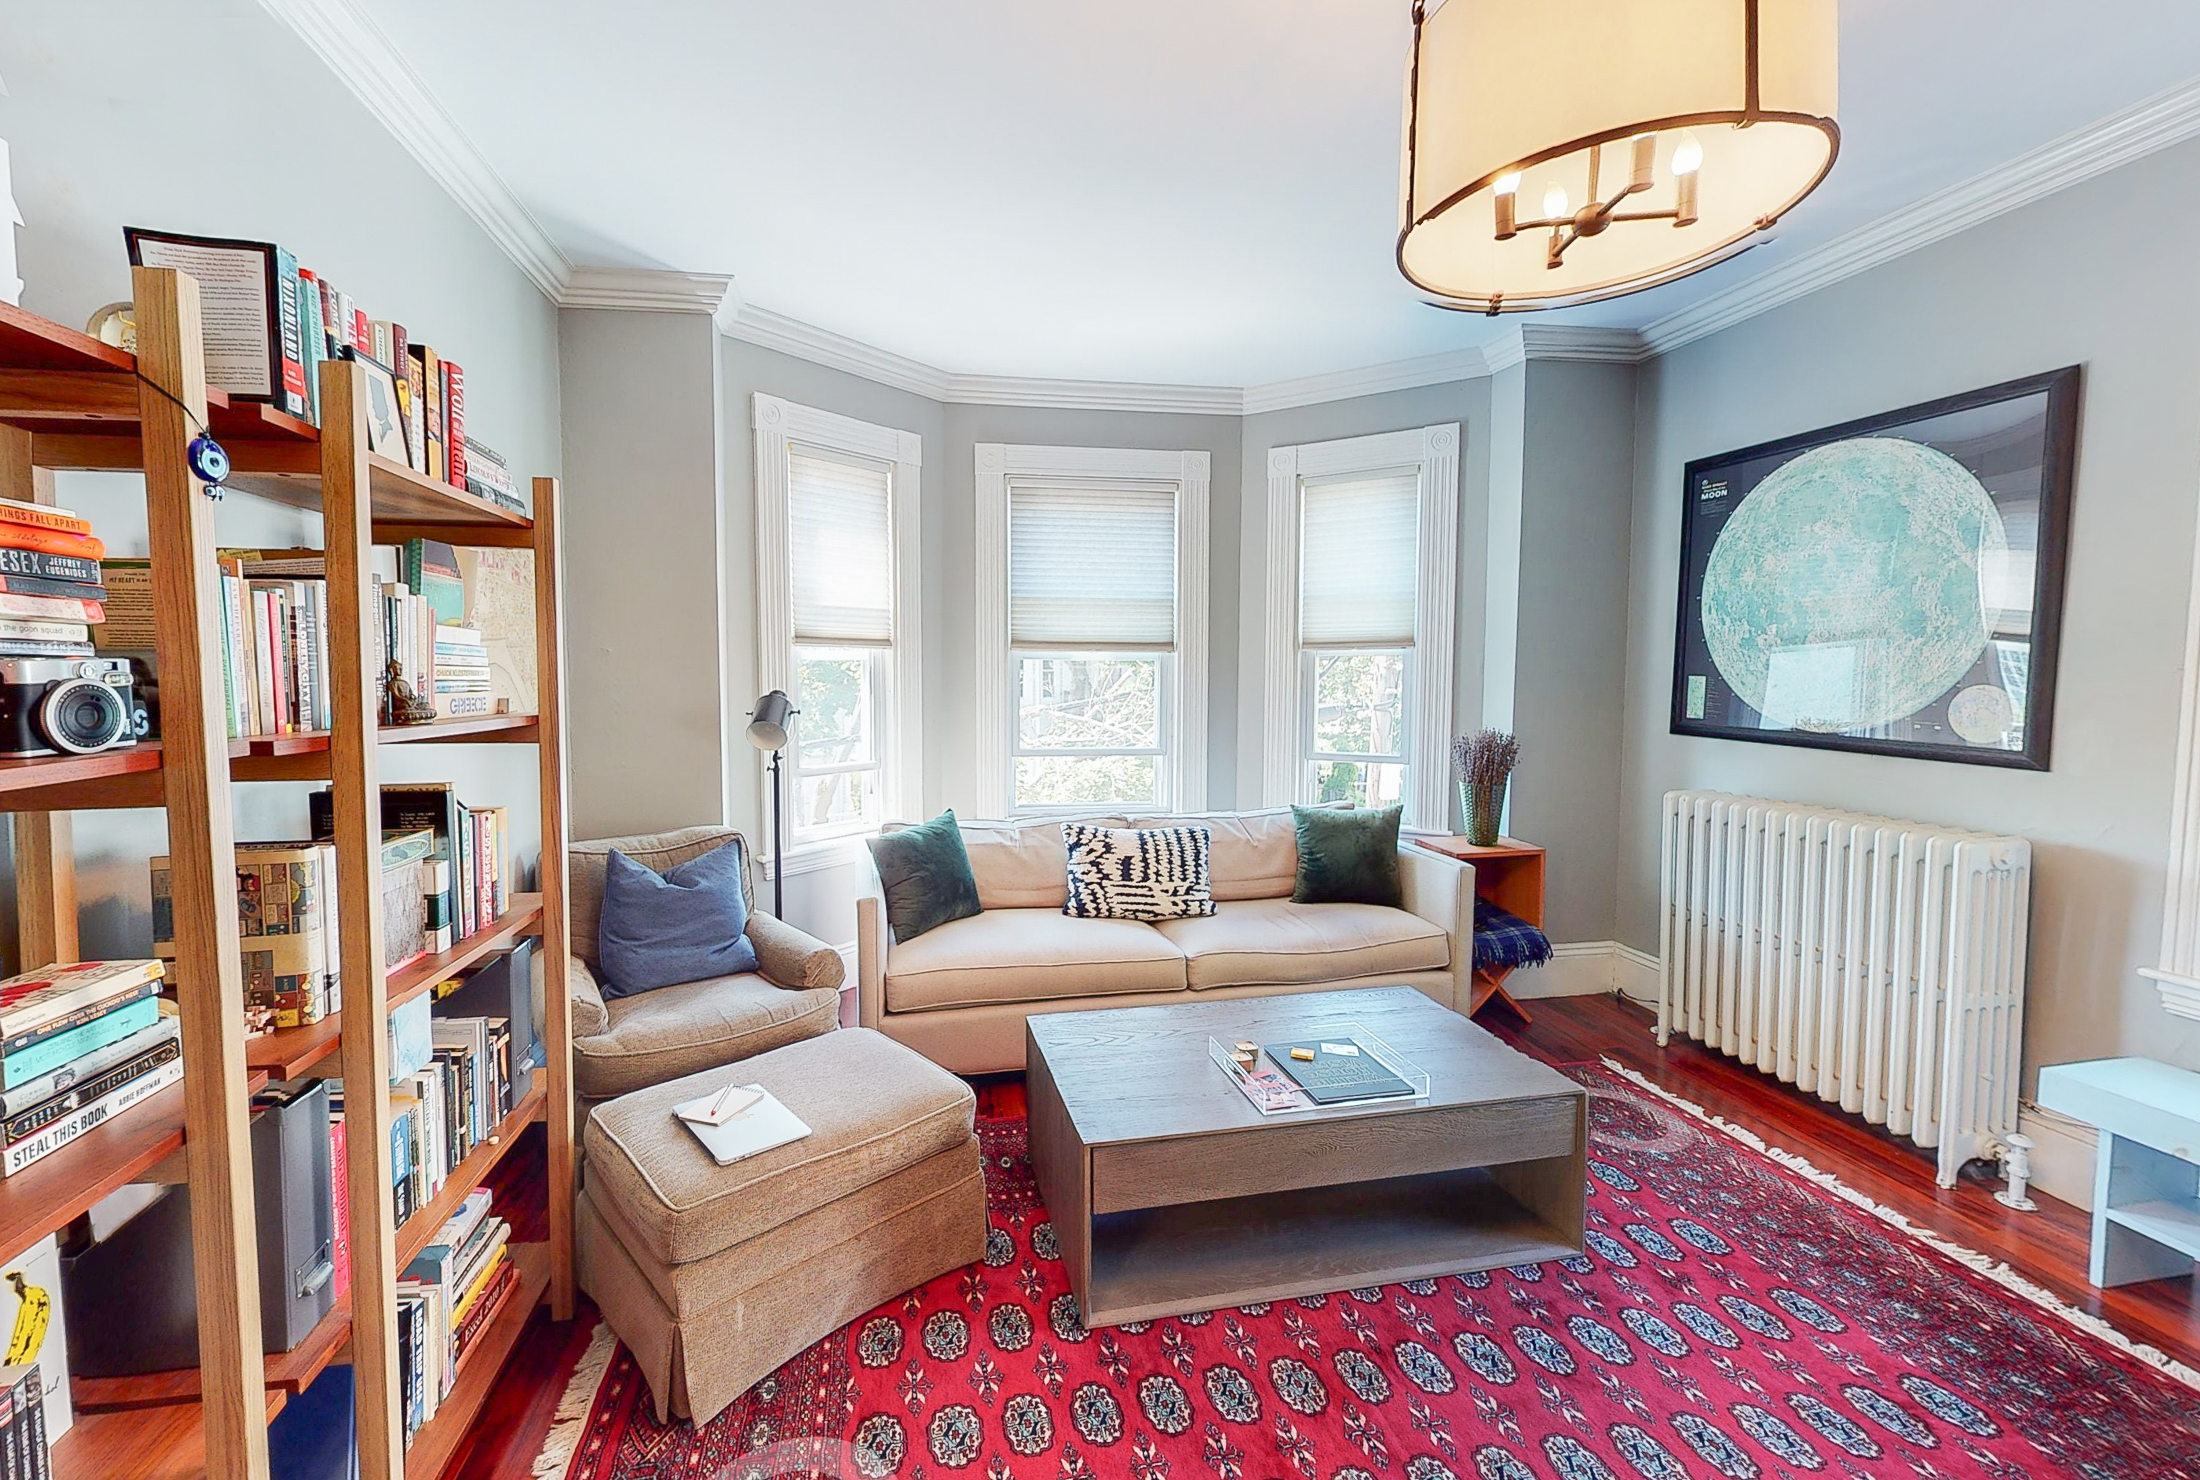 4 Apartments Around Boston That Are Now Offering 1 Month Free Rent